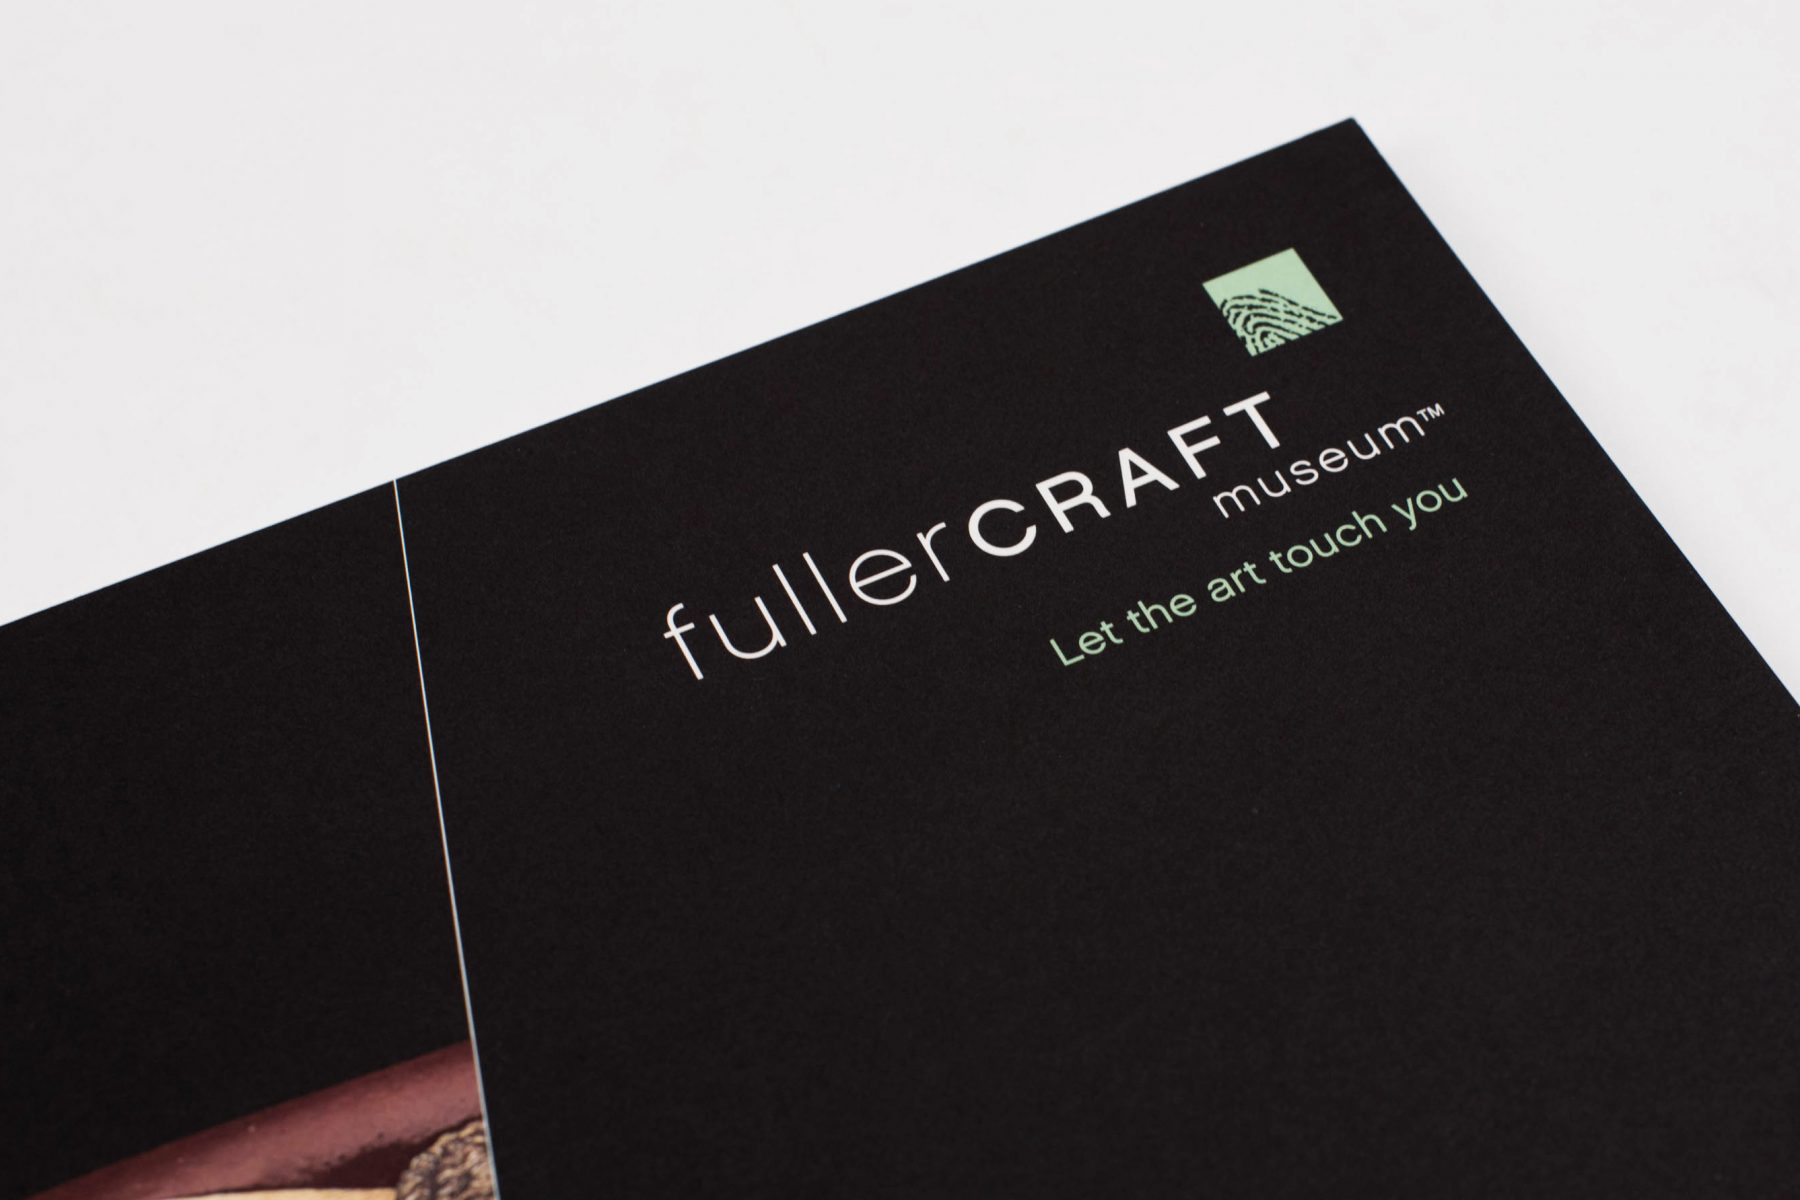 Fuller Craft Museum exhibit book